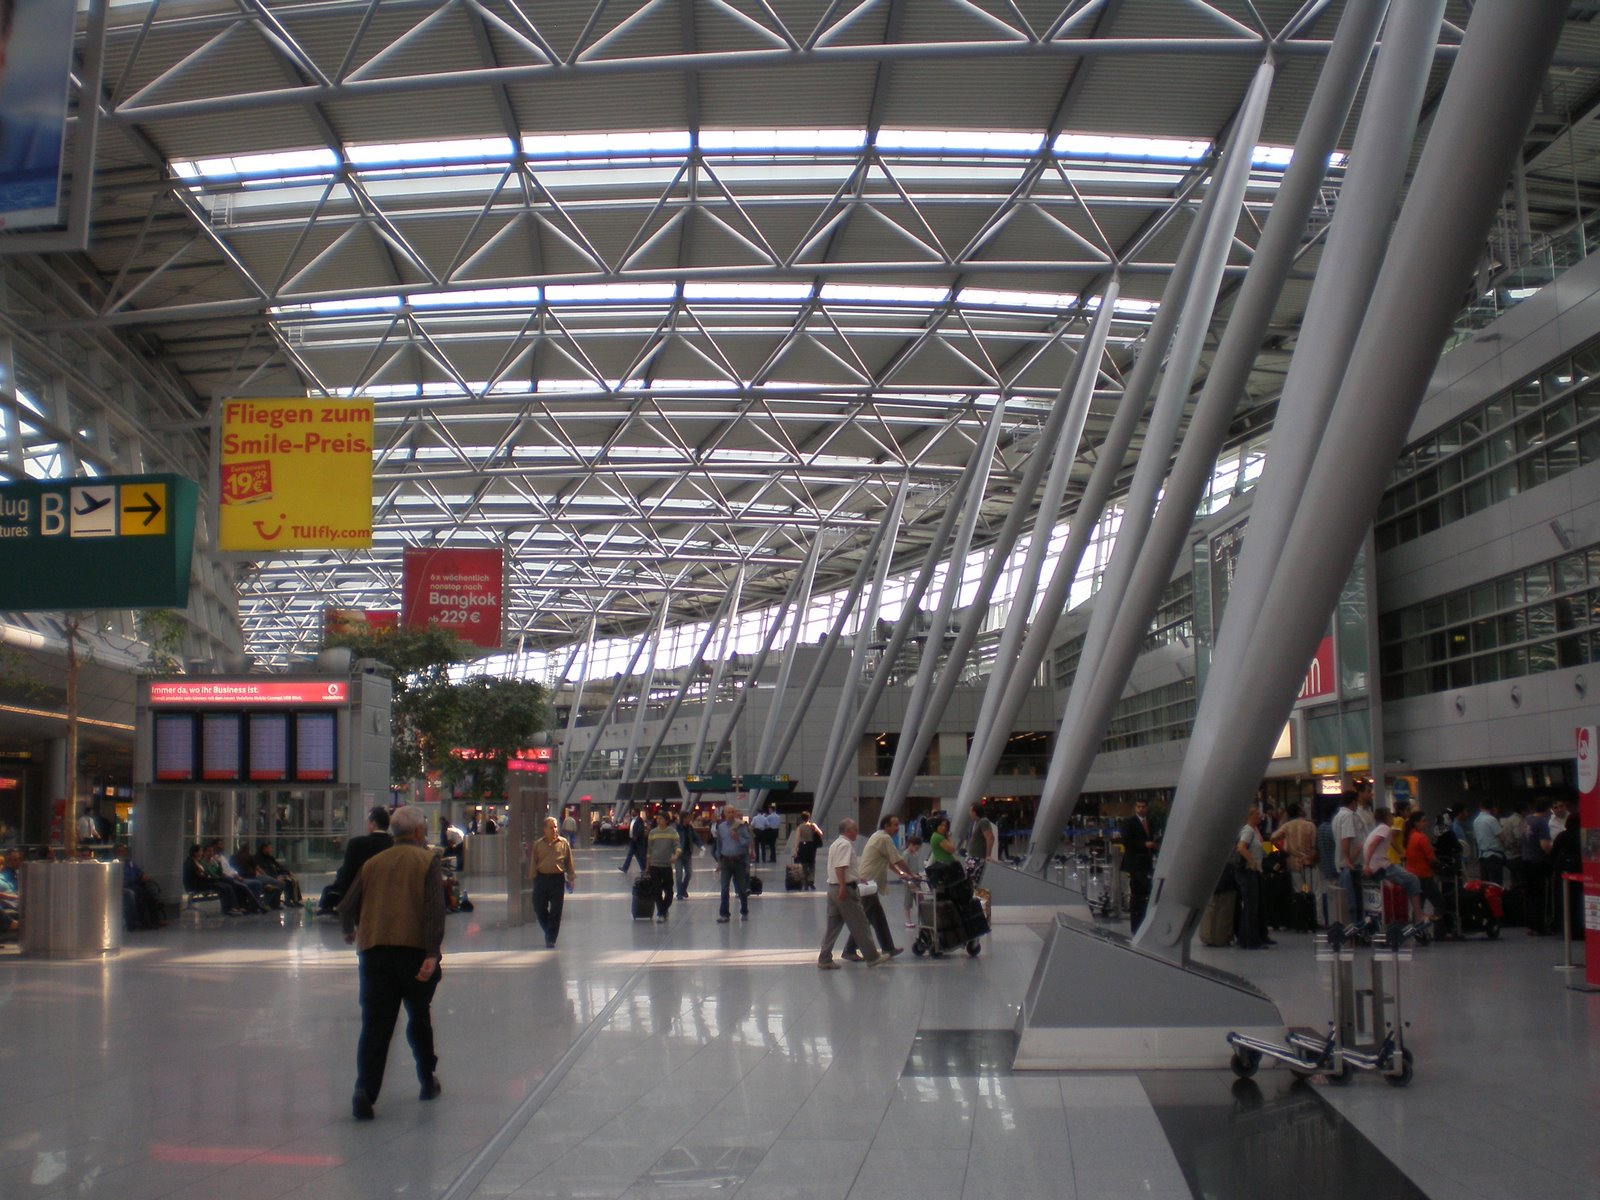 Dusseldorf Airport Be Our Guest